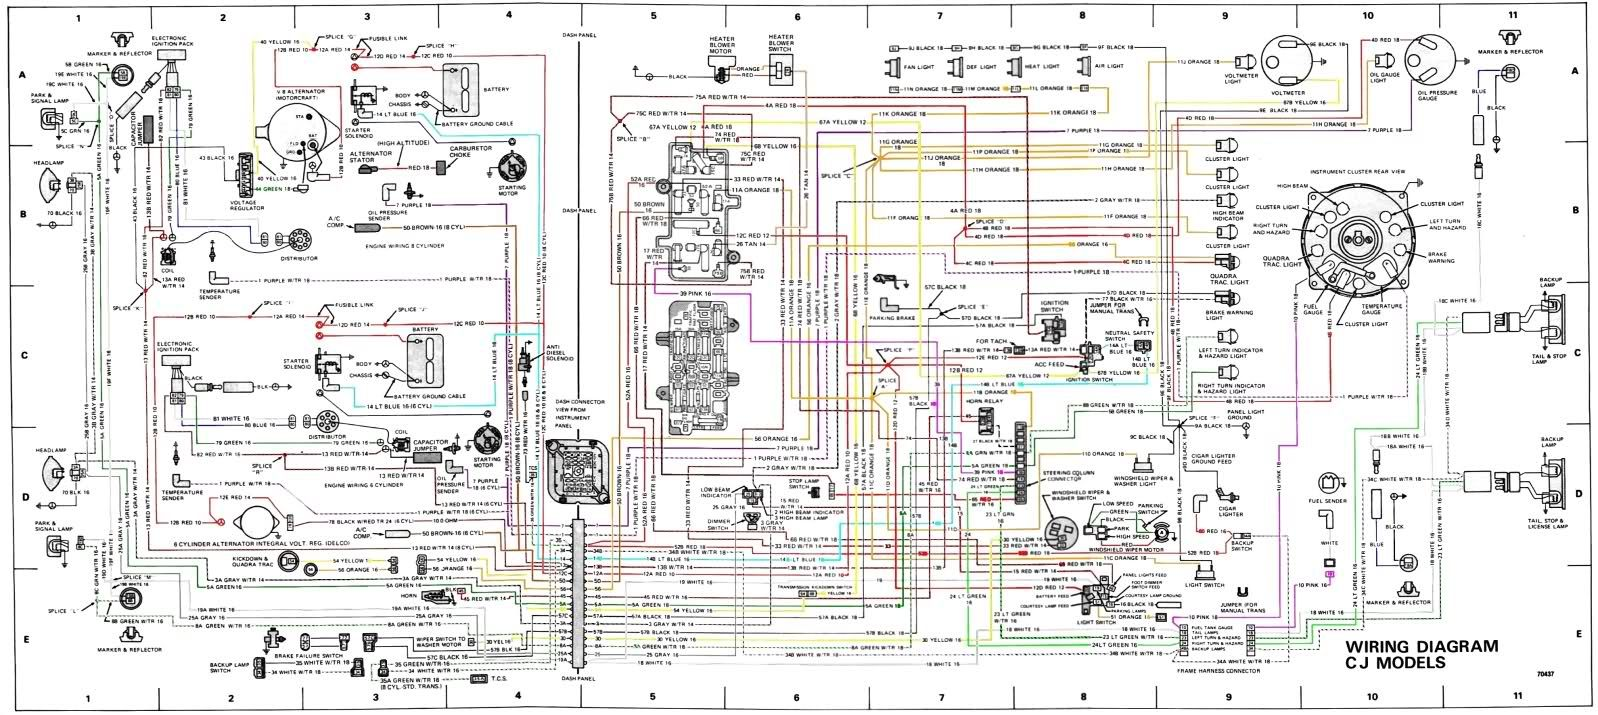 cj jeep wire harness diagram wiring schematic diagram 1971 Jeep CJ5 Wiring-Diagram image result for jeep cj7 wiring harness diagram jeep wire diagram jeep grand cherokee transmission diagram